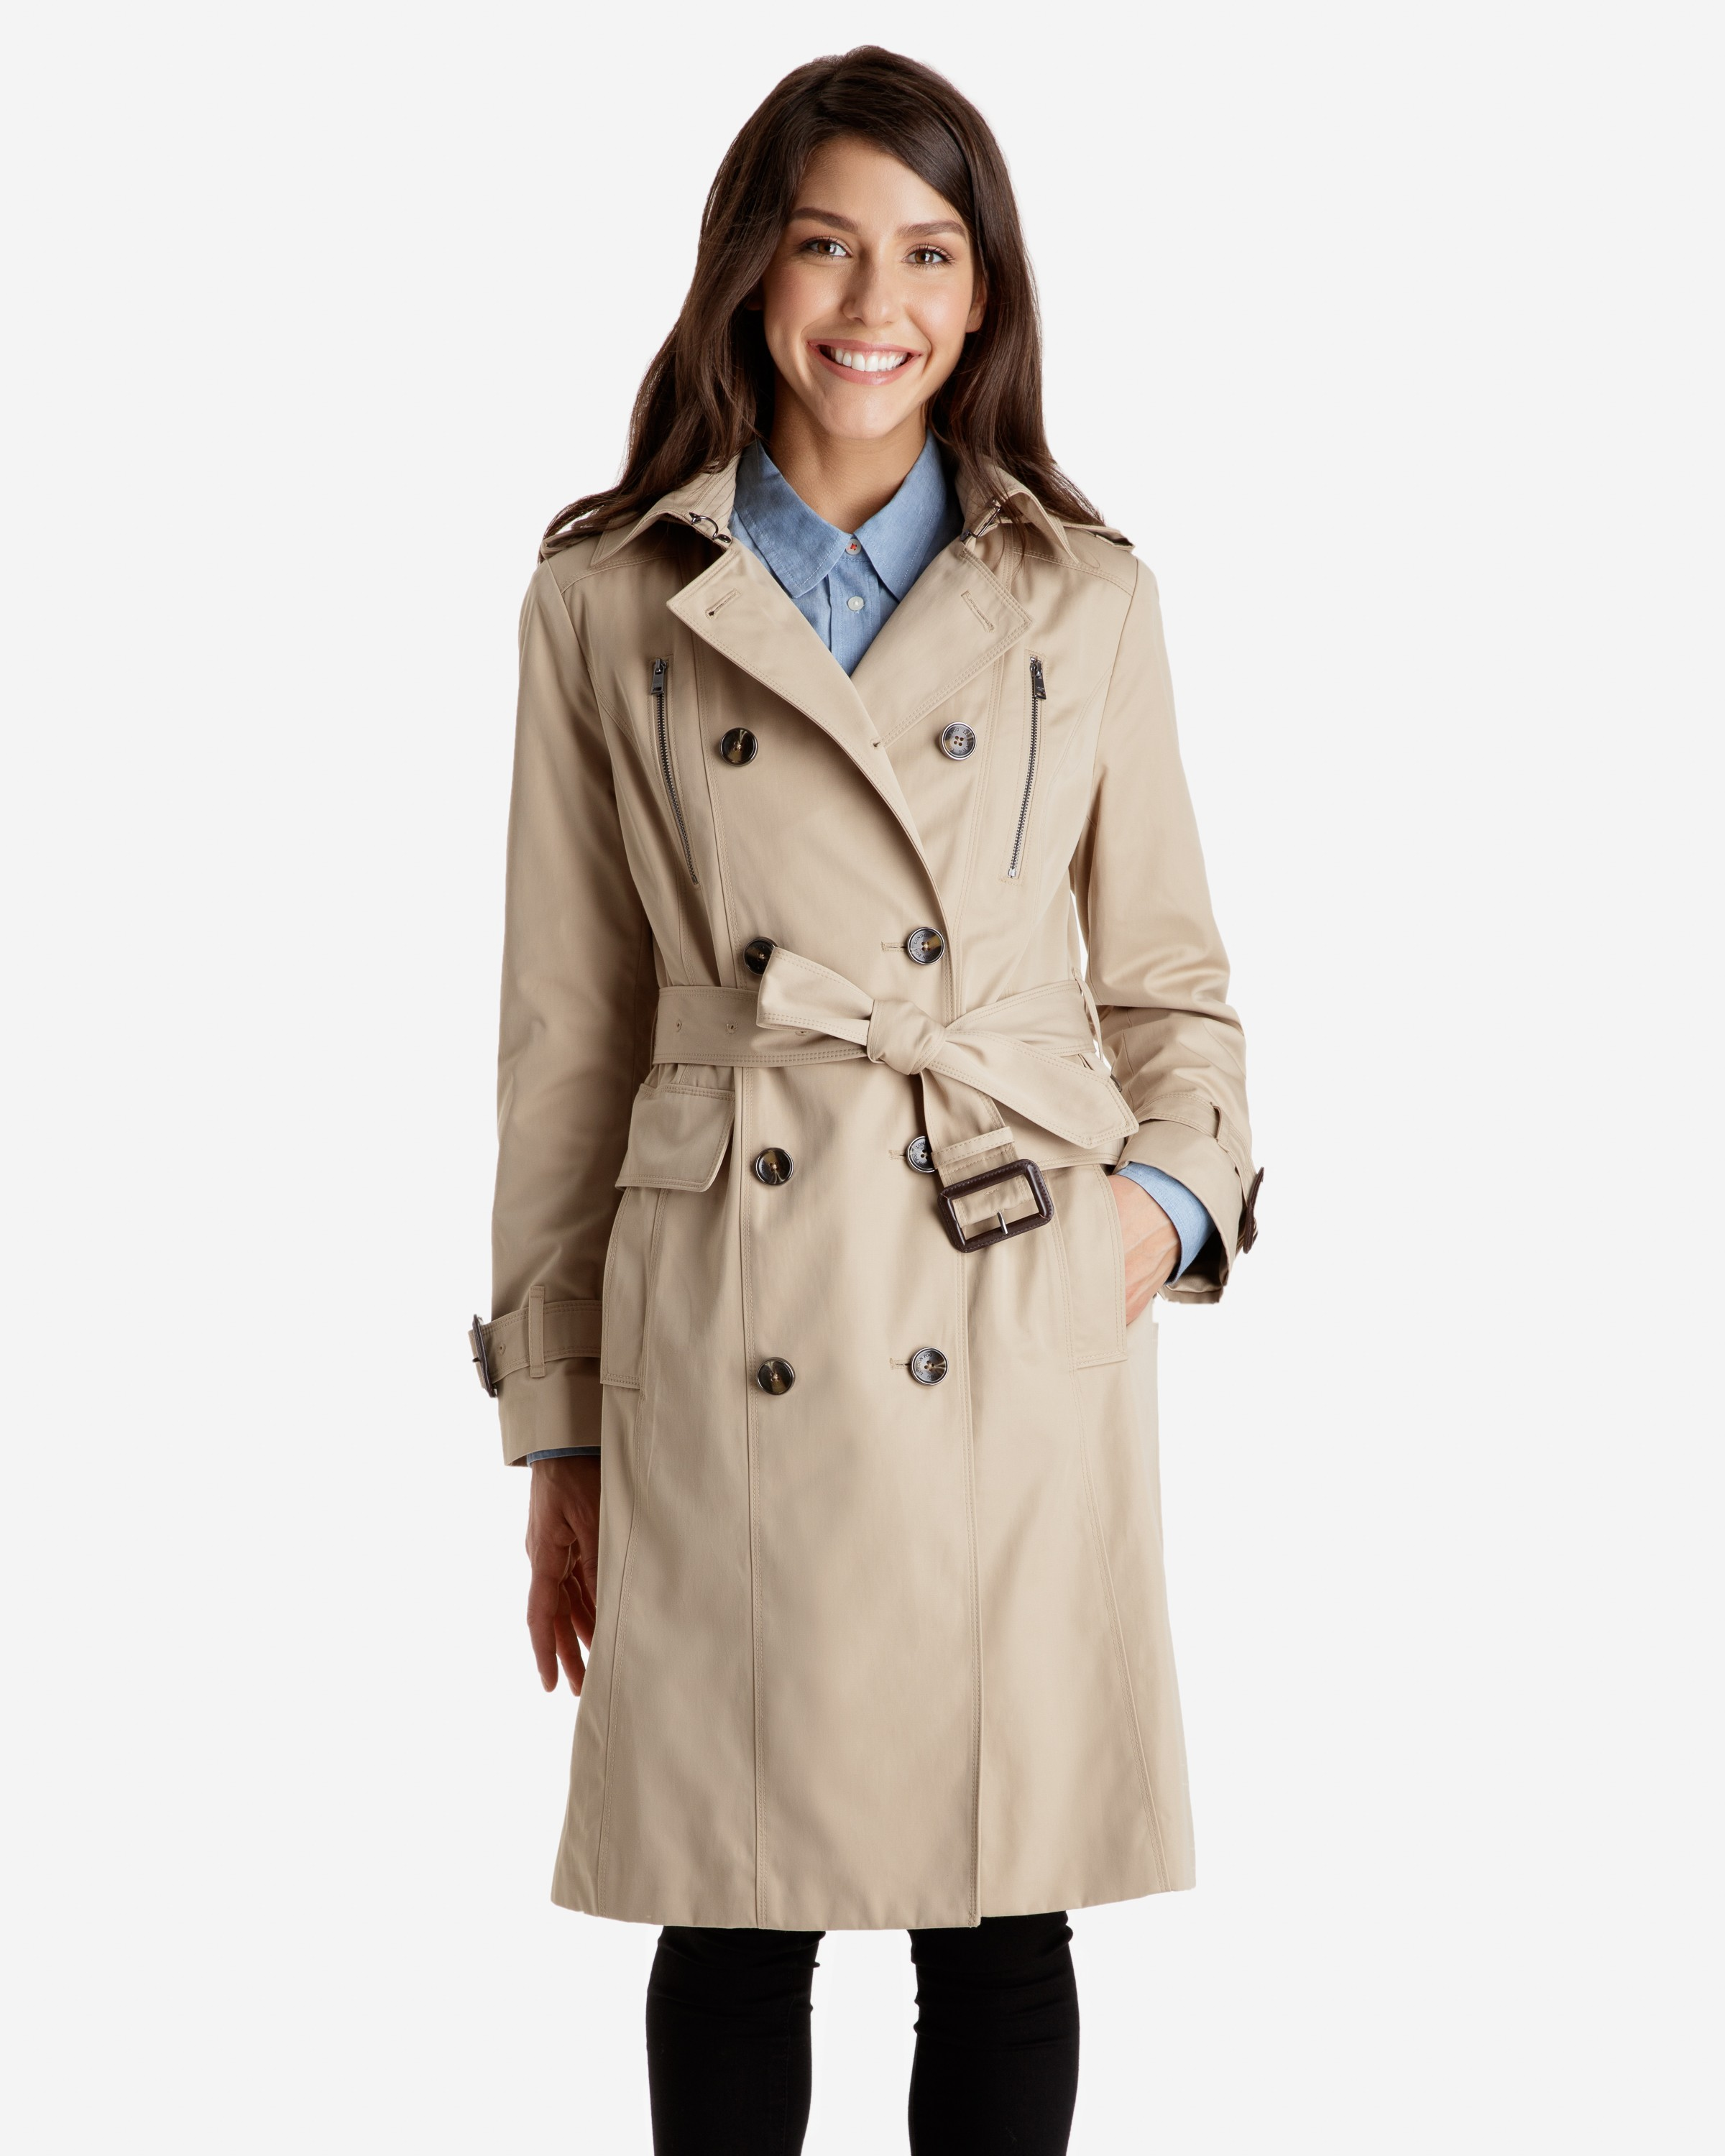 Trench coat: style name for all